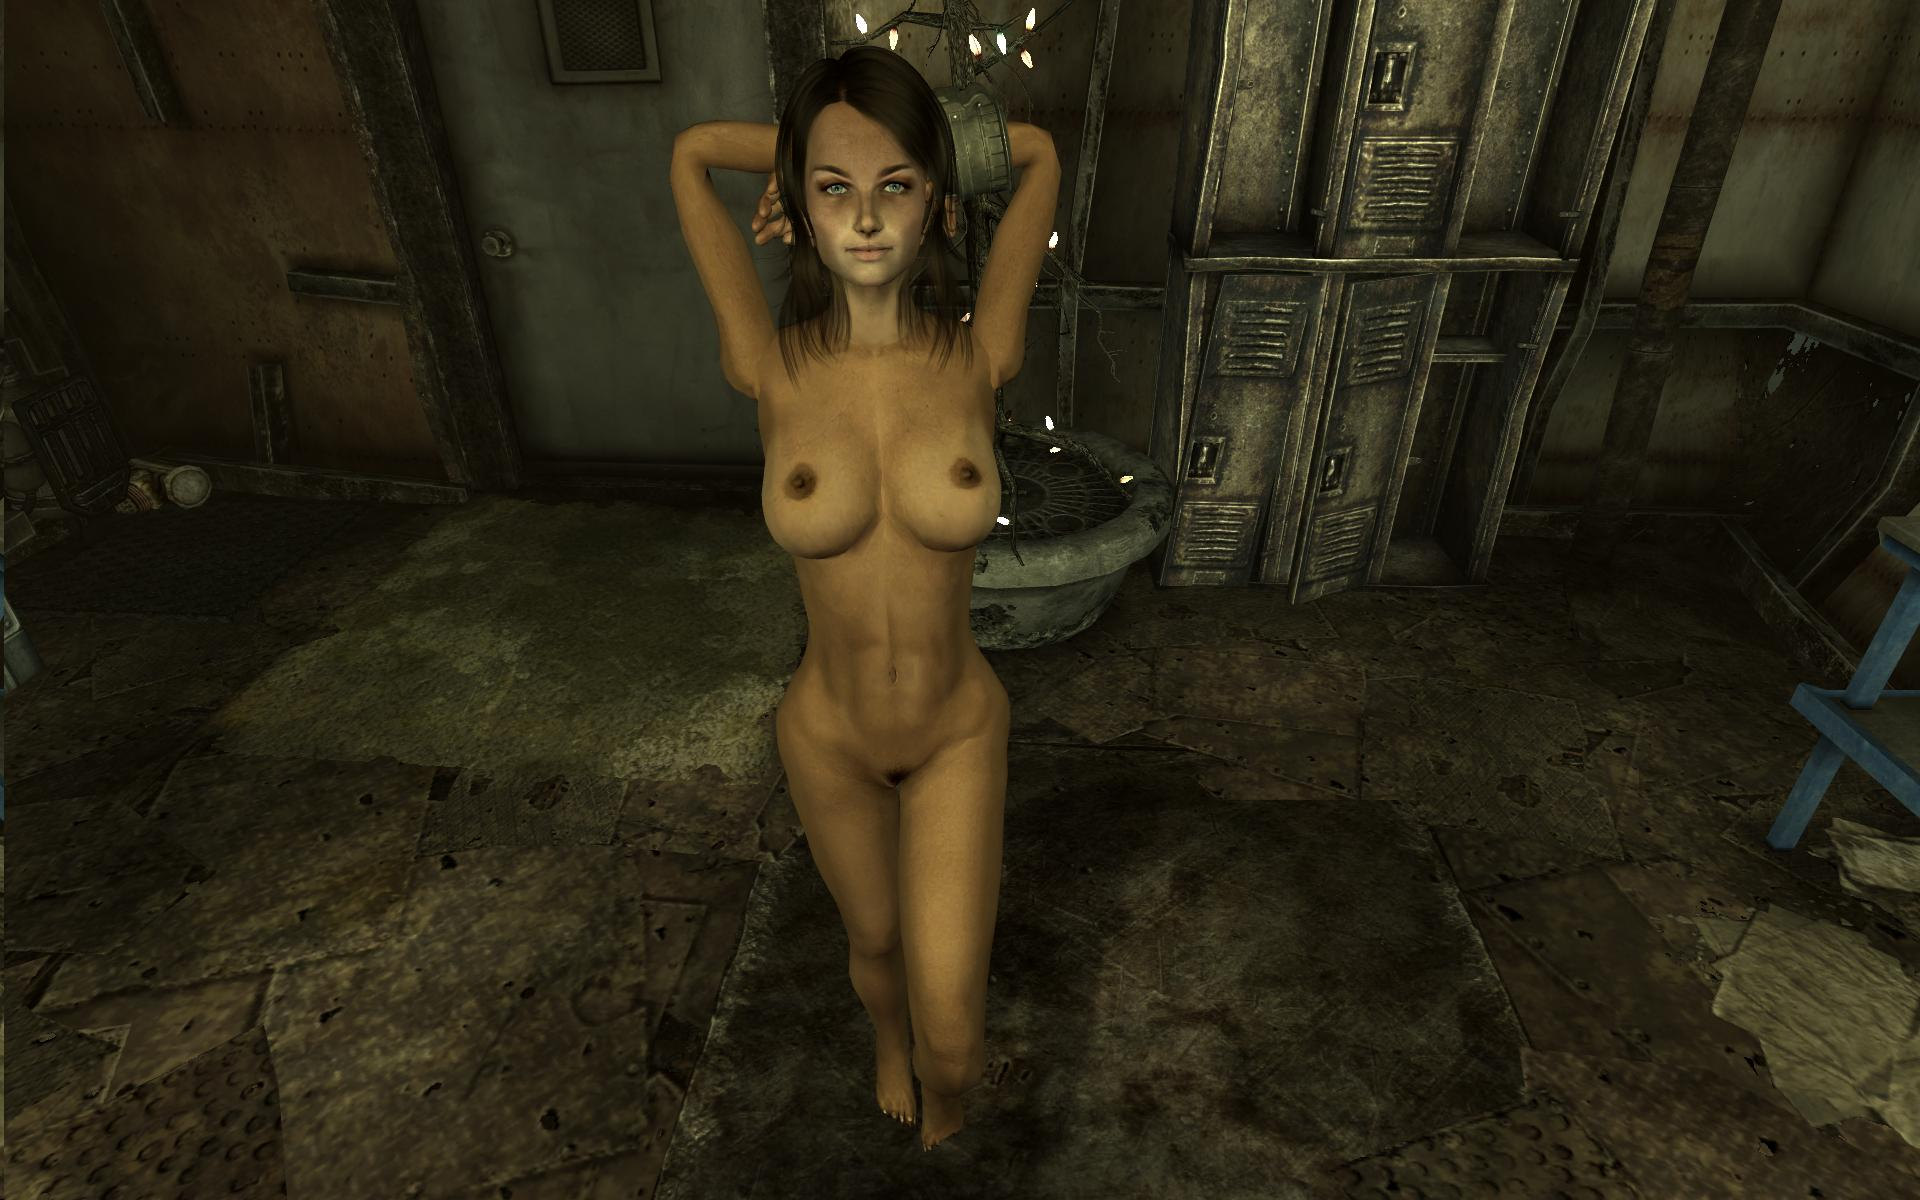 veronica from fallout naked